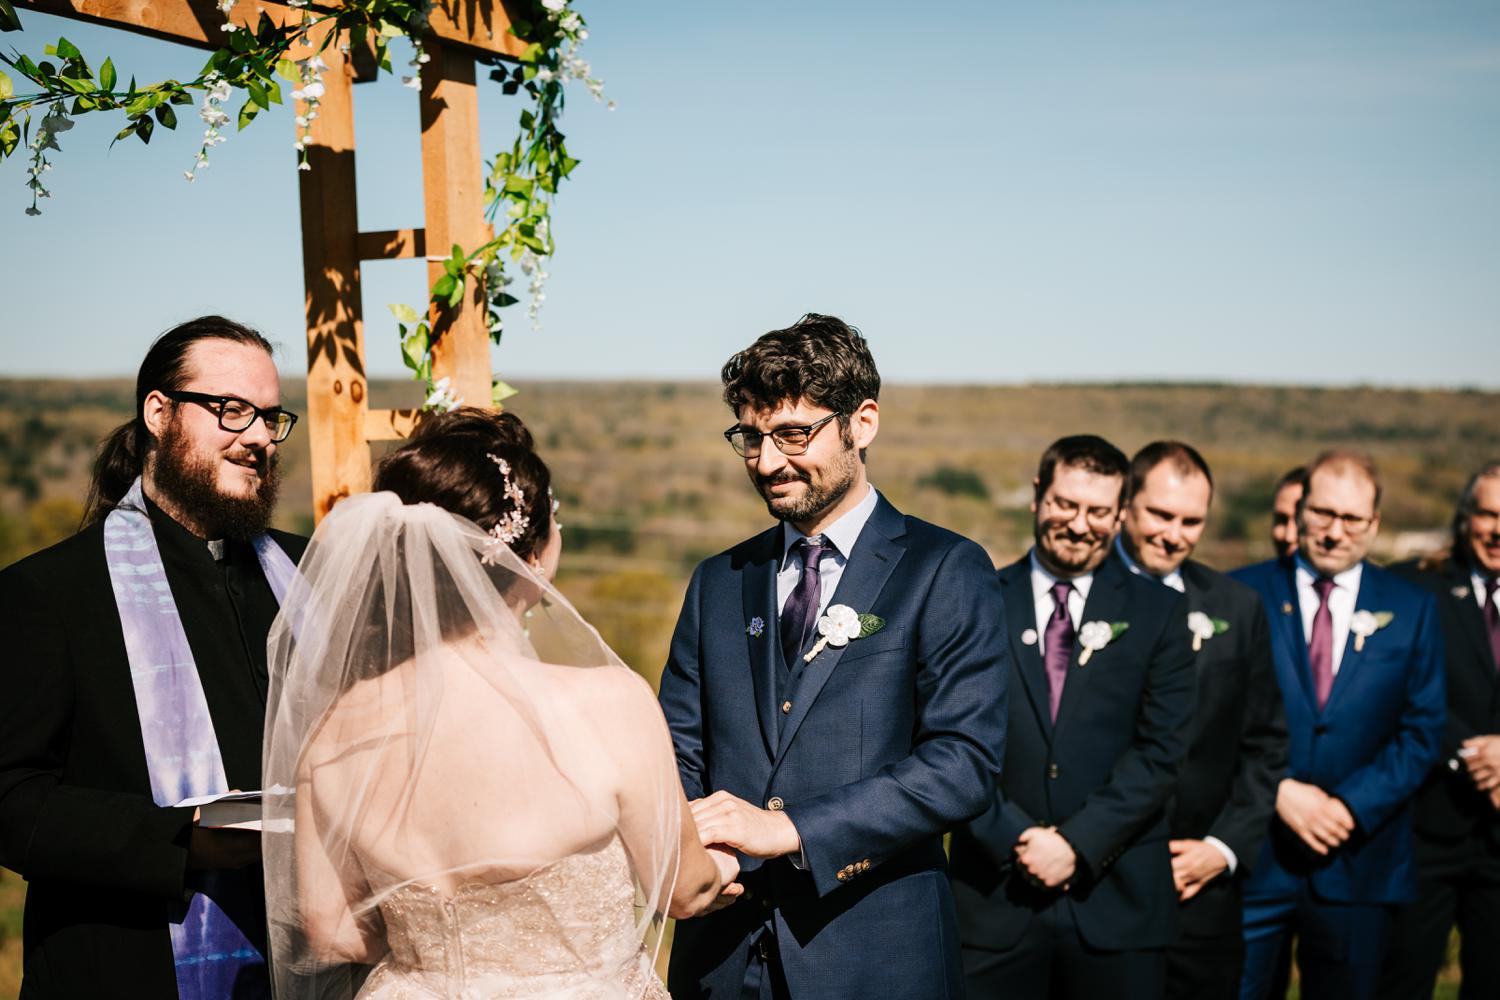 Groom looking at bride during ceremony under floral arch in New Mexico